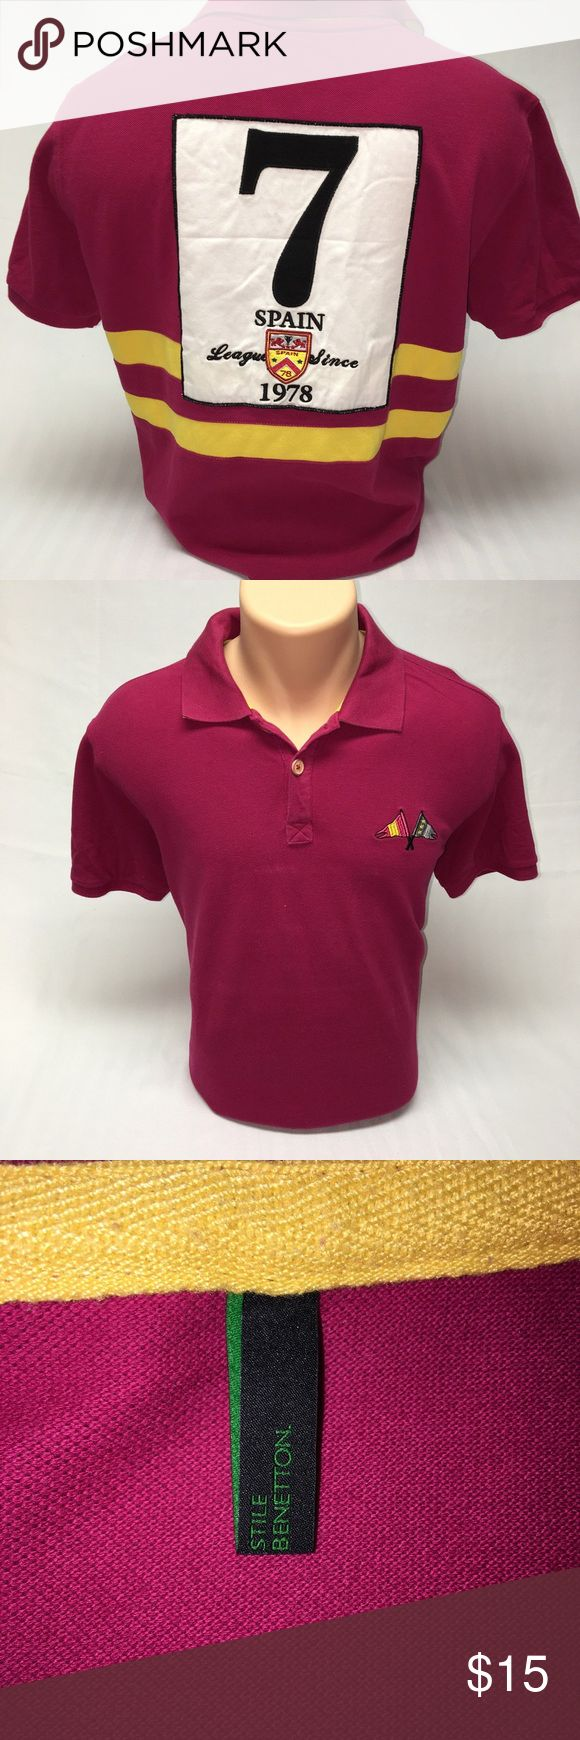 """Stile Benetton """"Spain"""" polo (XL) Stile Benetton """"Spain"""" polo (XL), some marks on front from ironing, *XL FITS LIKE A LARGE* United Colors Of Benetton Shirts Polos"""